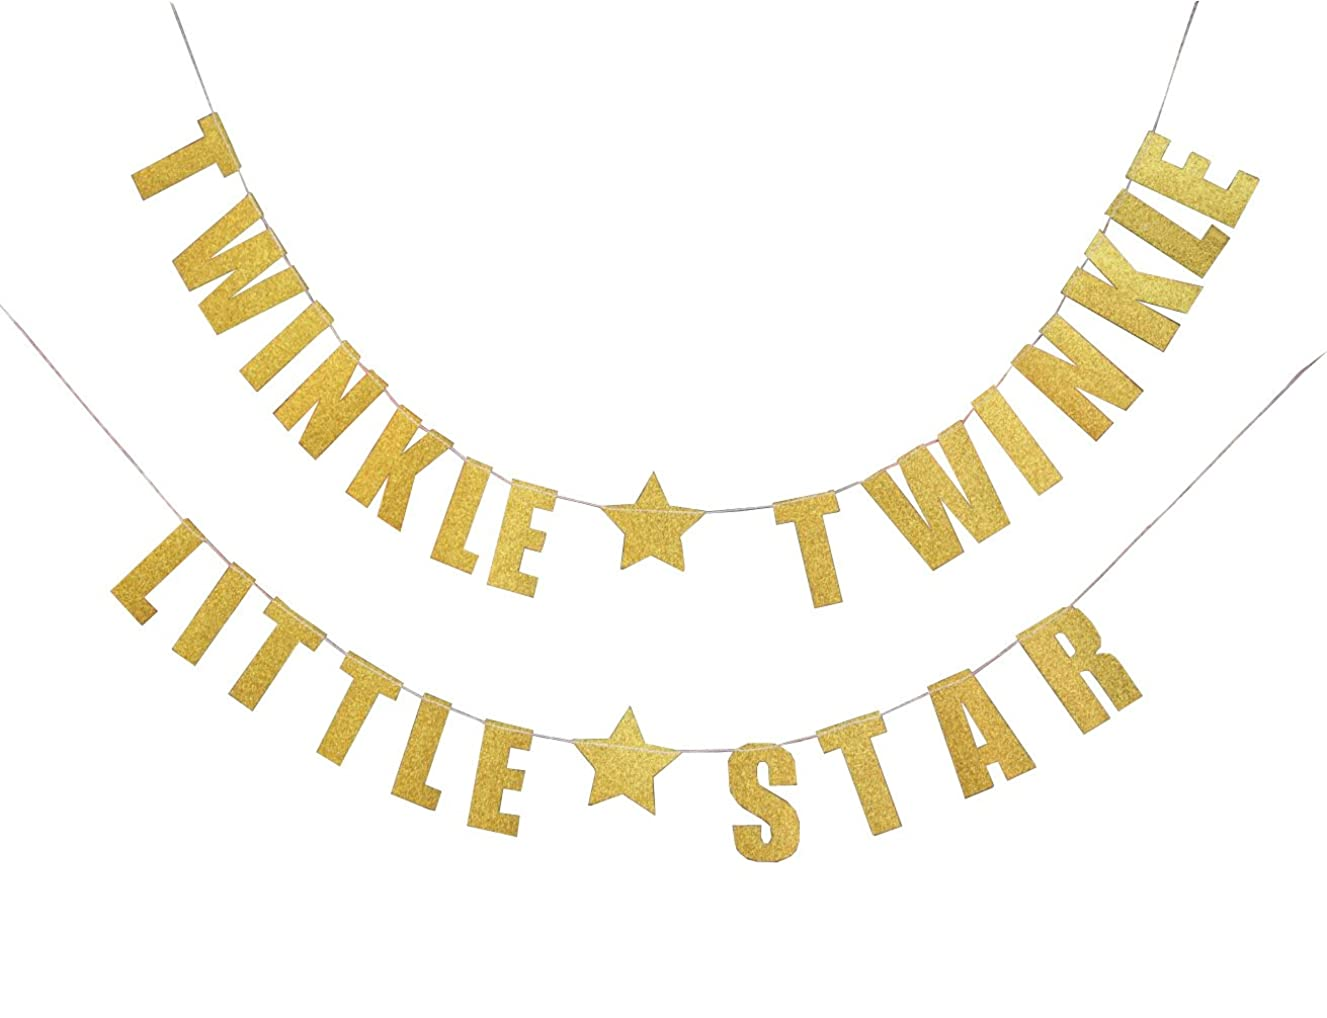 FECEDY Letters Twinkle Twinkle Little Star Glittery Gold Banner for Birthday Party,Baby Shower Party (Gold)